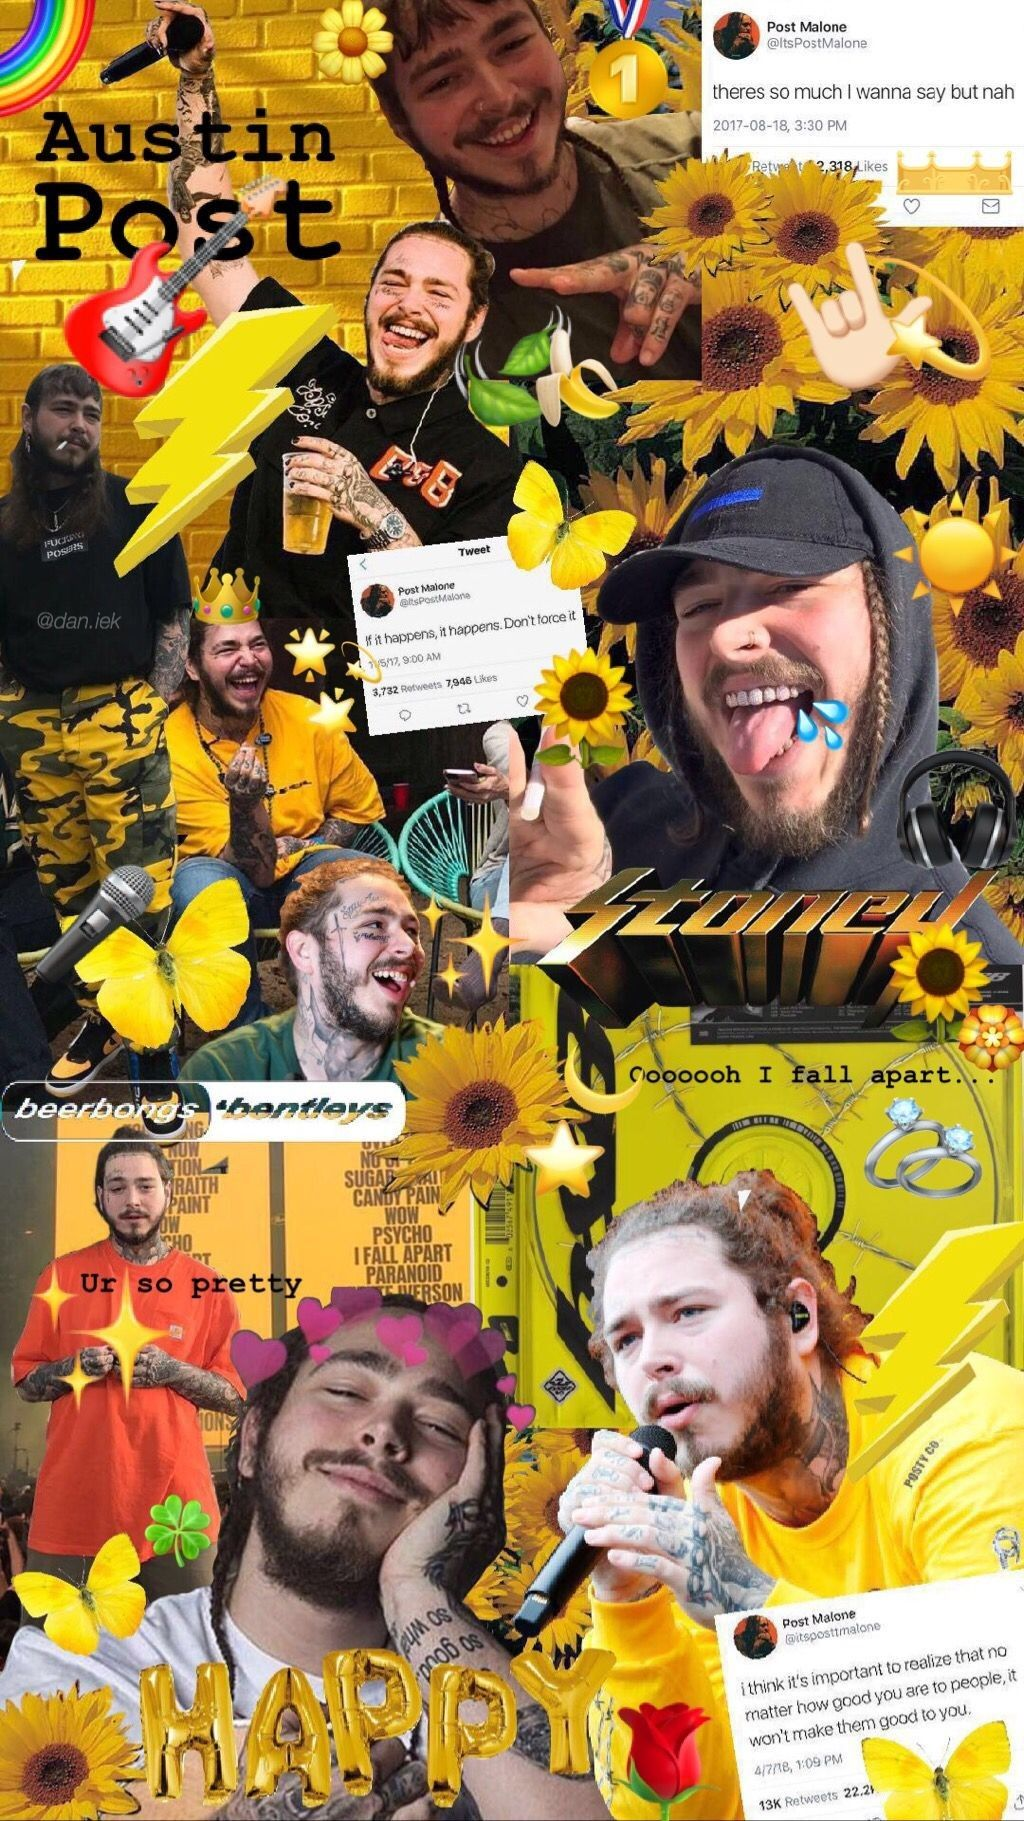 Pin By Alexis Rader On Aesthetic ෆ ෆ Post Malone